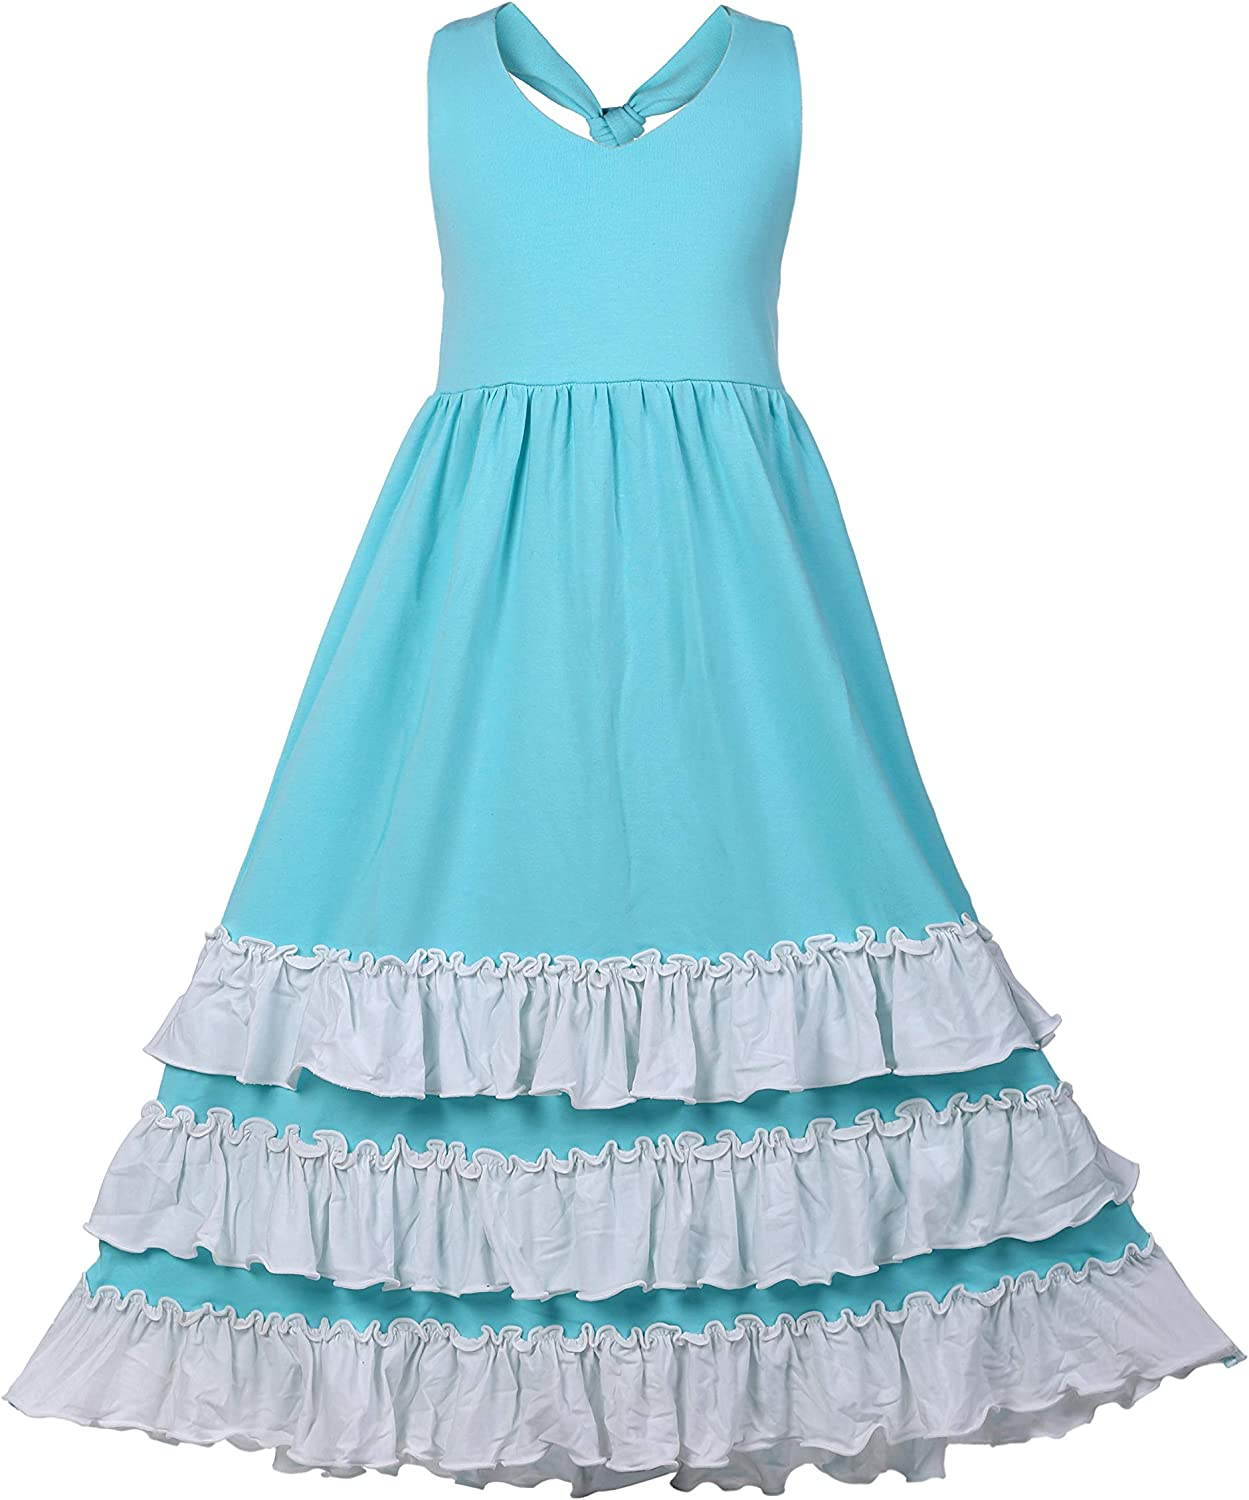 Girls Ruffles Maxi Dress Pink Color Halter Lace Fly Sleeve Cotton Party Dress Skirts